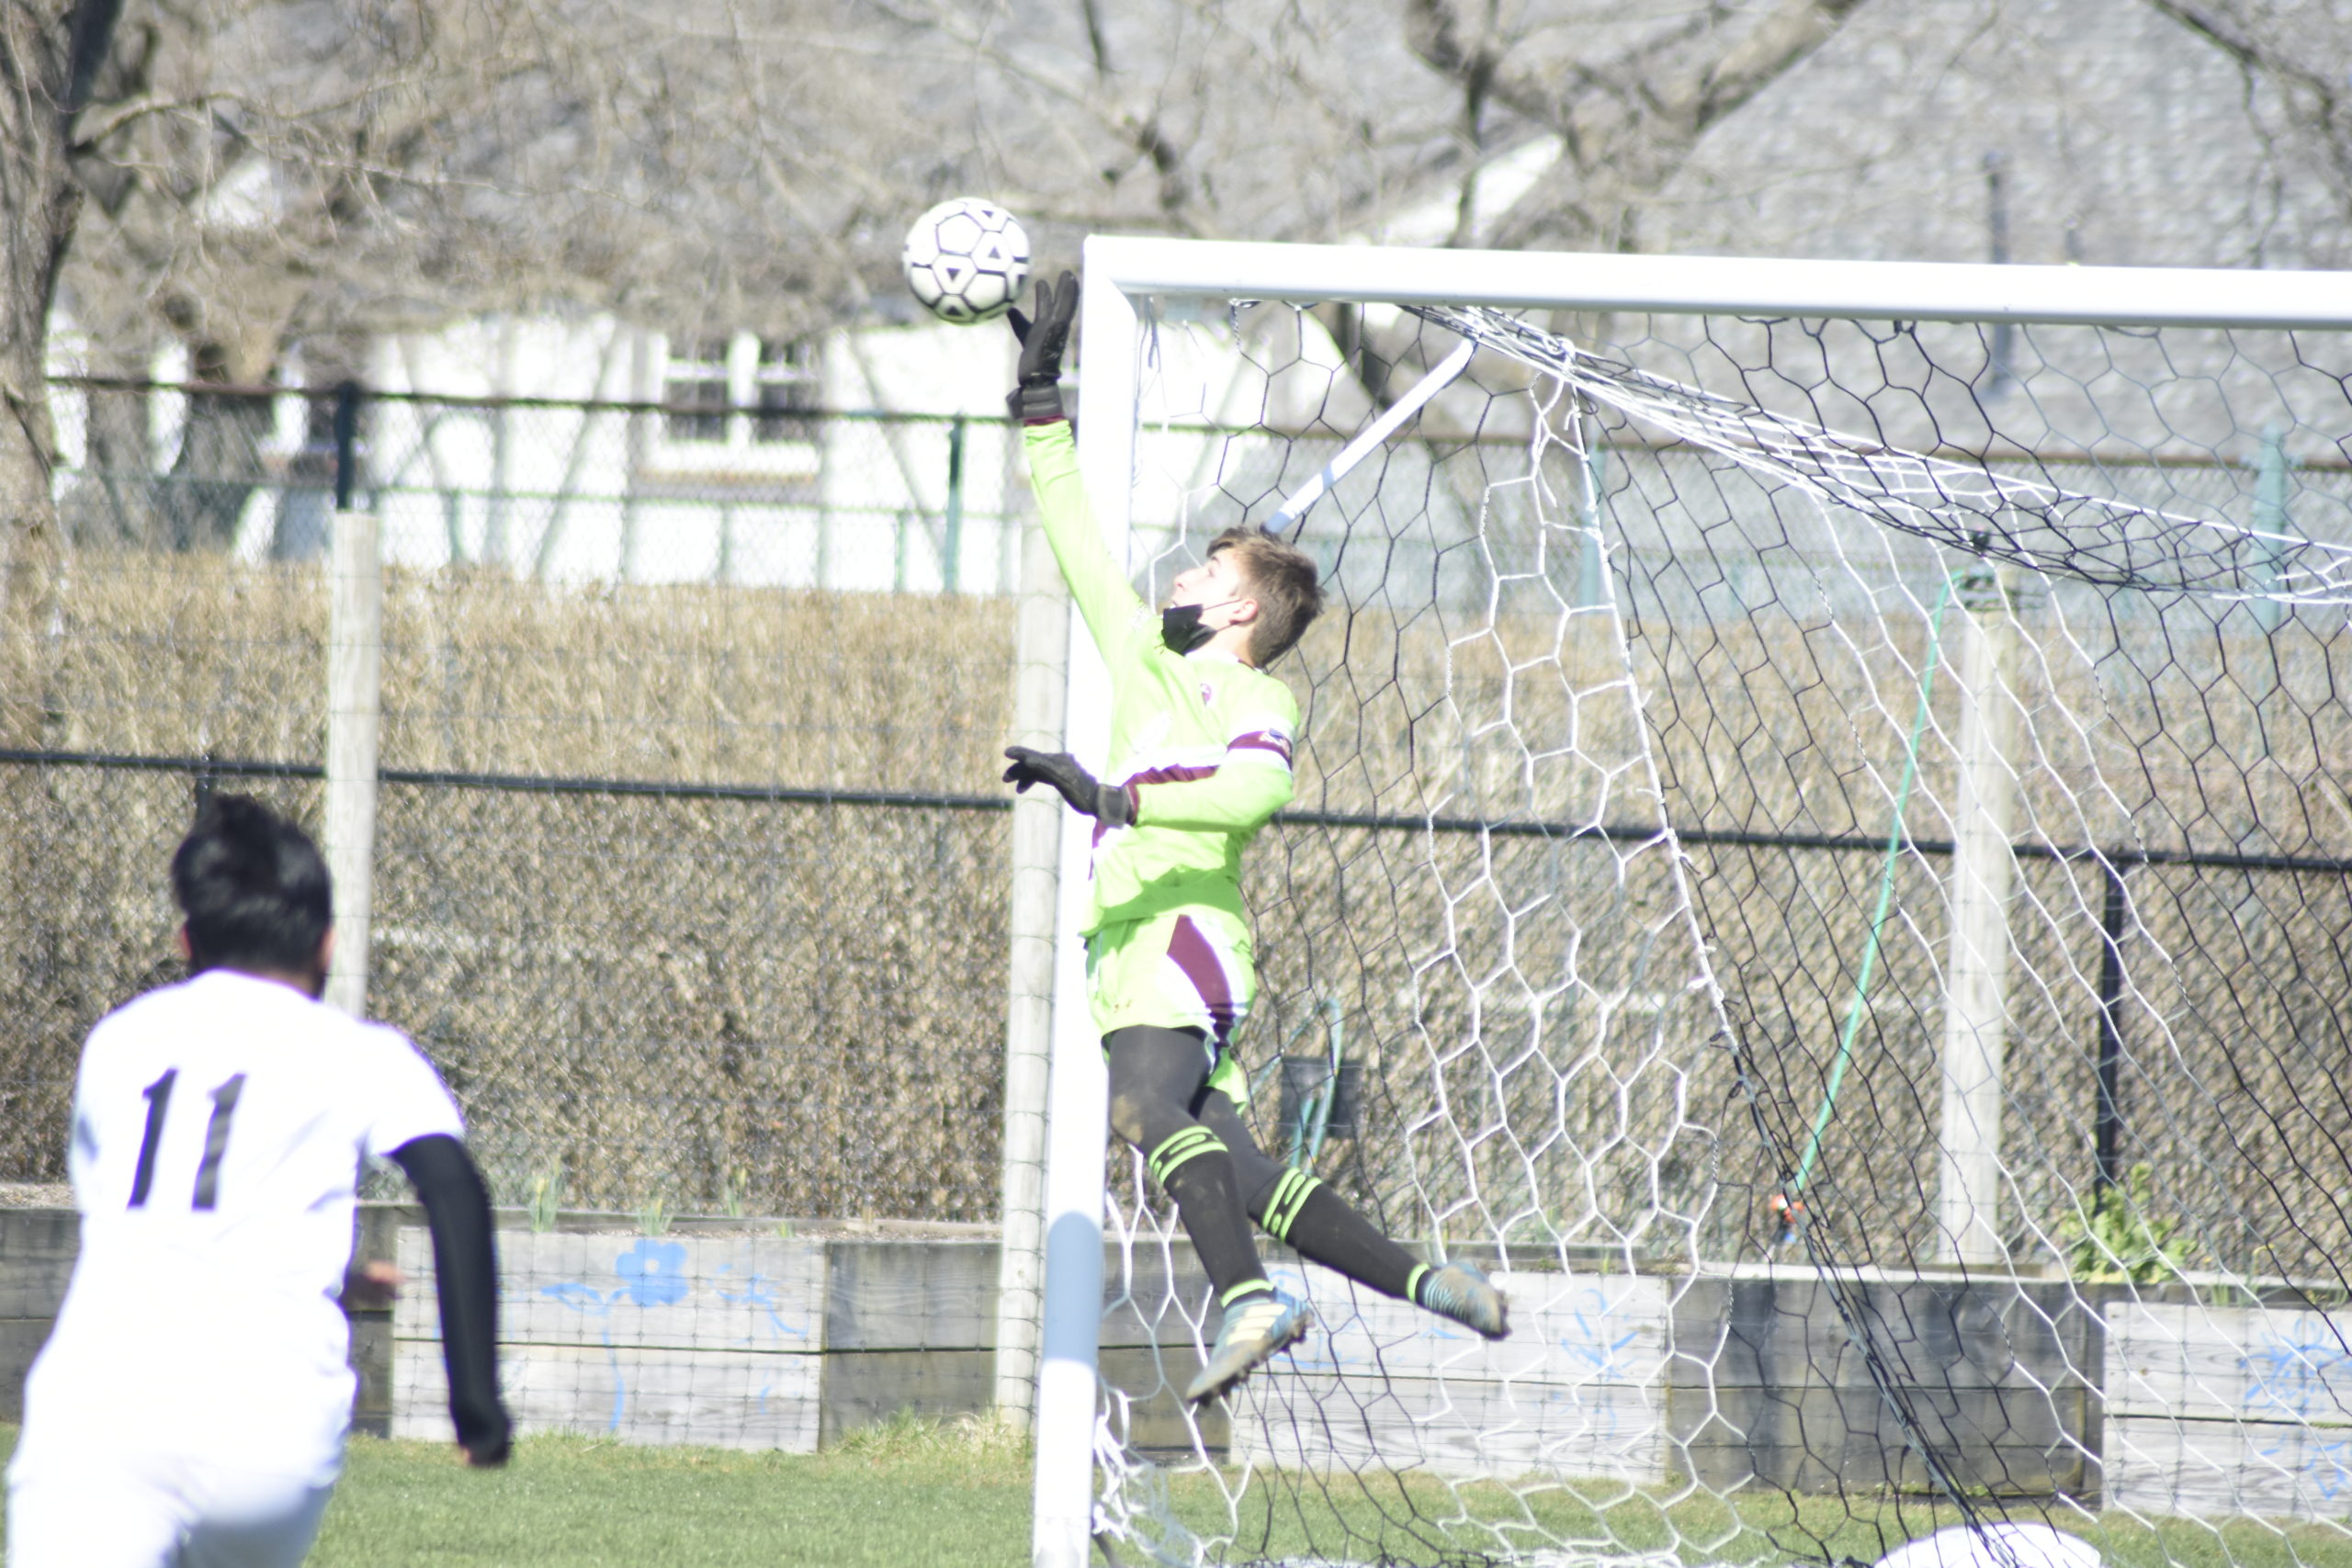 Southampton sophomore goalie Andrew Panza stretches out to make a save on Pierson's Javi Tubatan's indirect kick in the first half of Saturday's game.